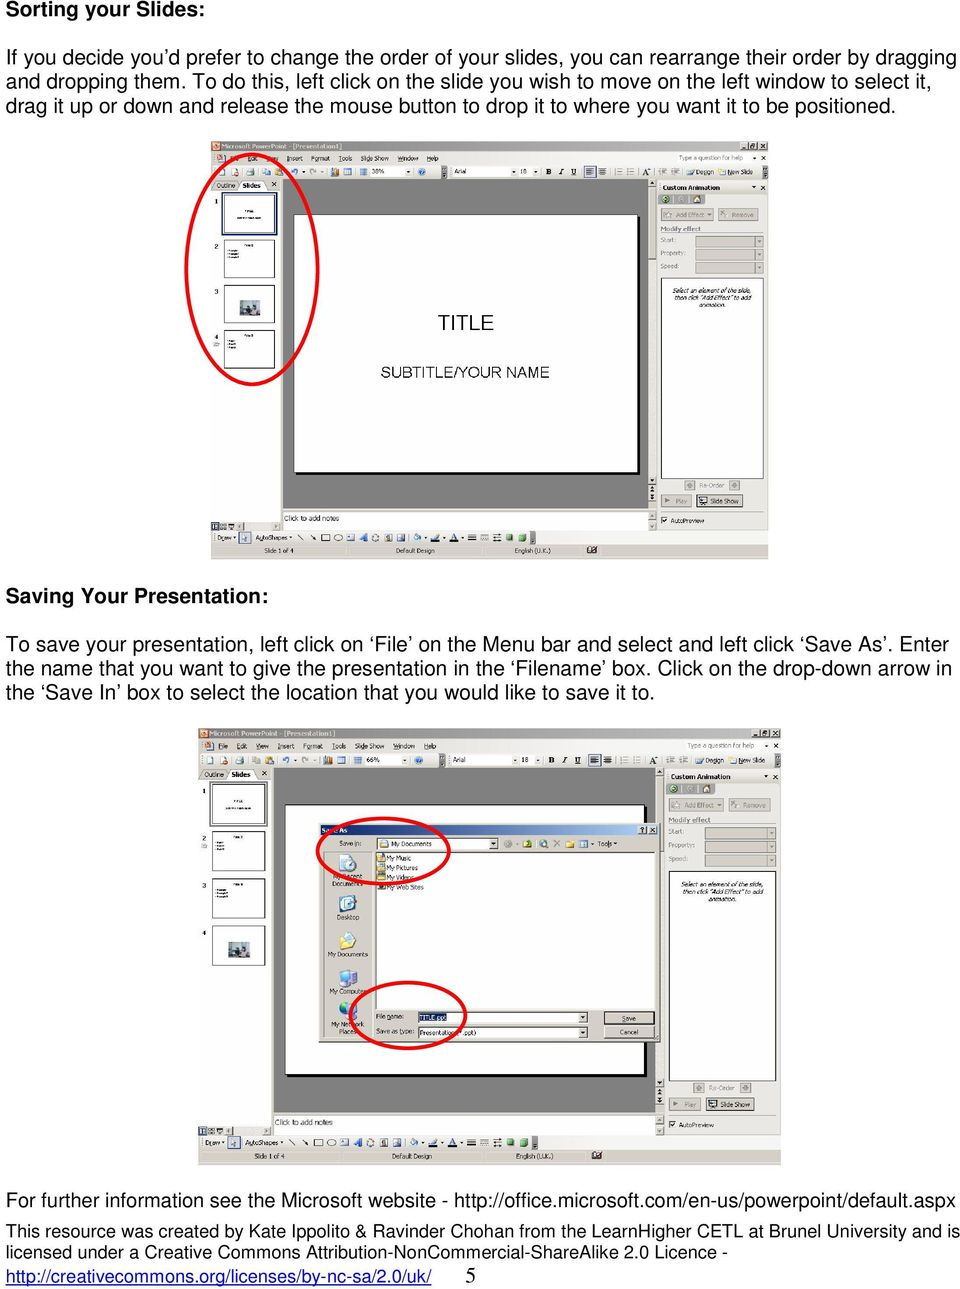 Saving Your Presentation: To save your presentation, left click on File on the Menu bar and select and left click Save As. Enter the name that you want to give the presentation in the Filename box.